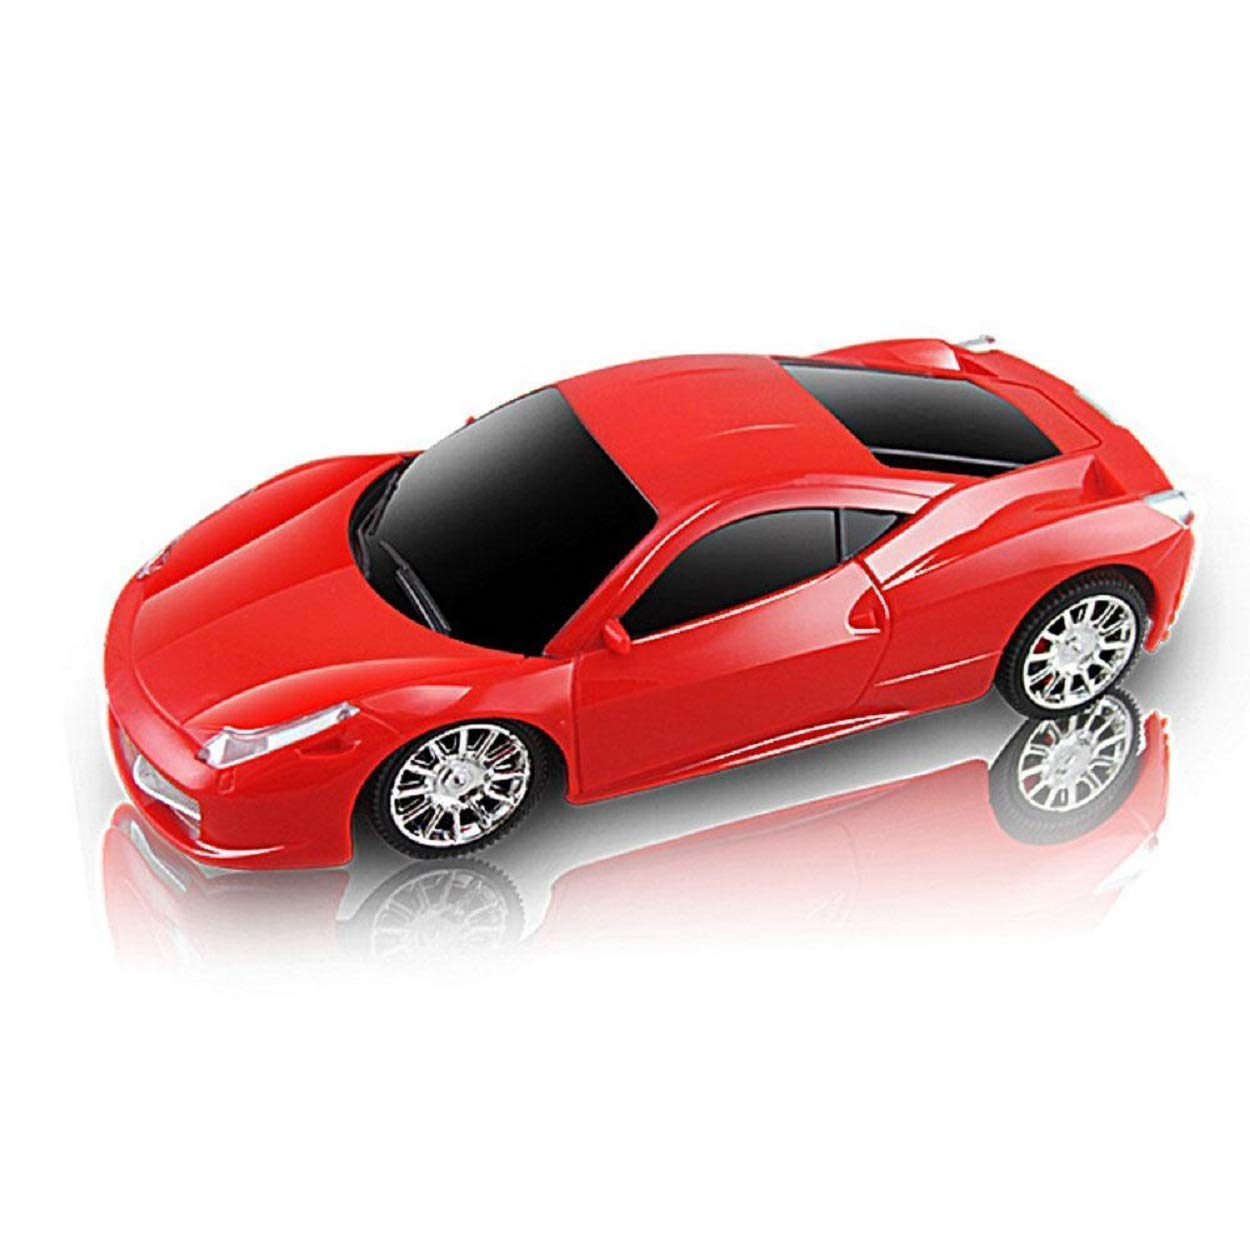 Blossom 1 24 Remote Control Car Toy Battery Operated Multi Color